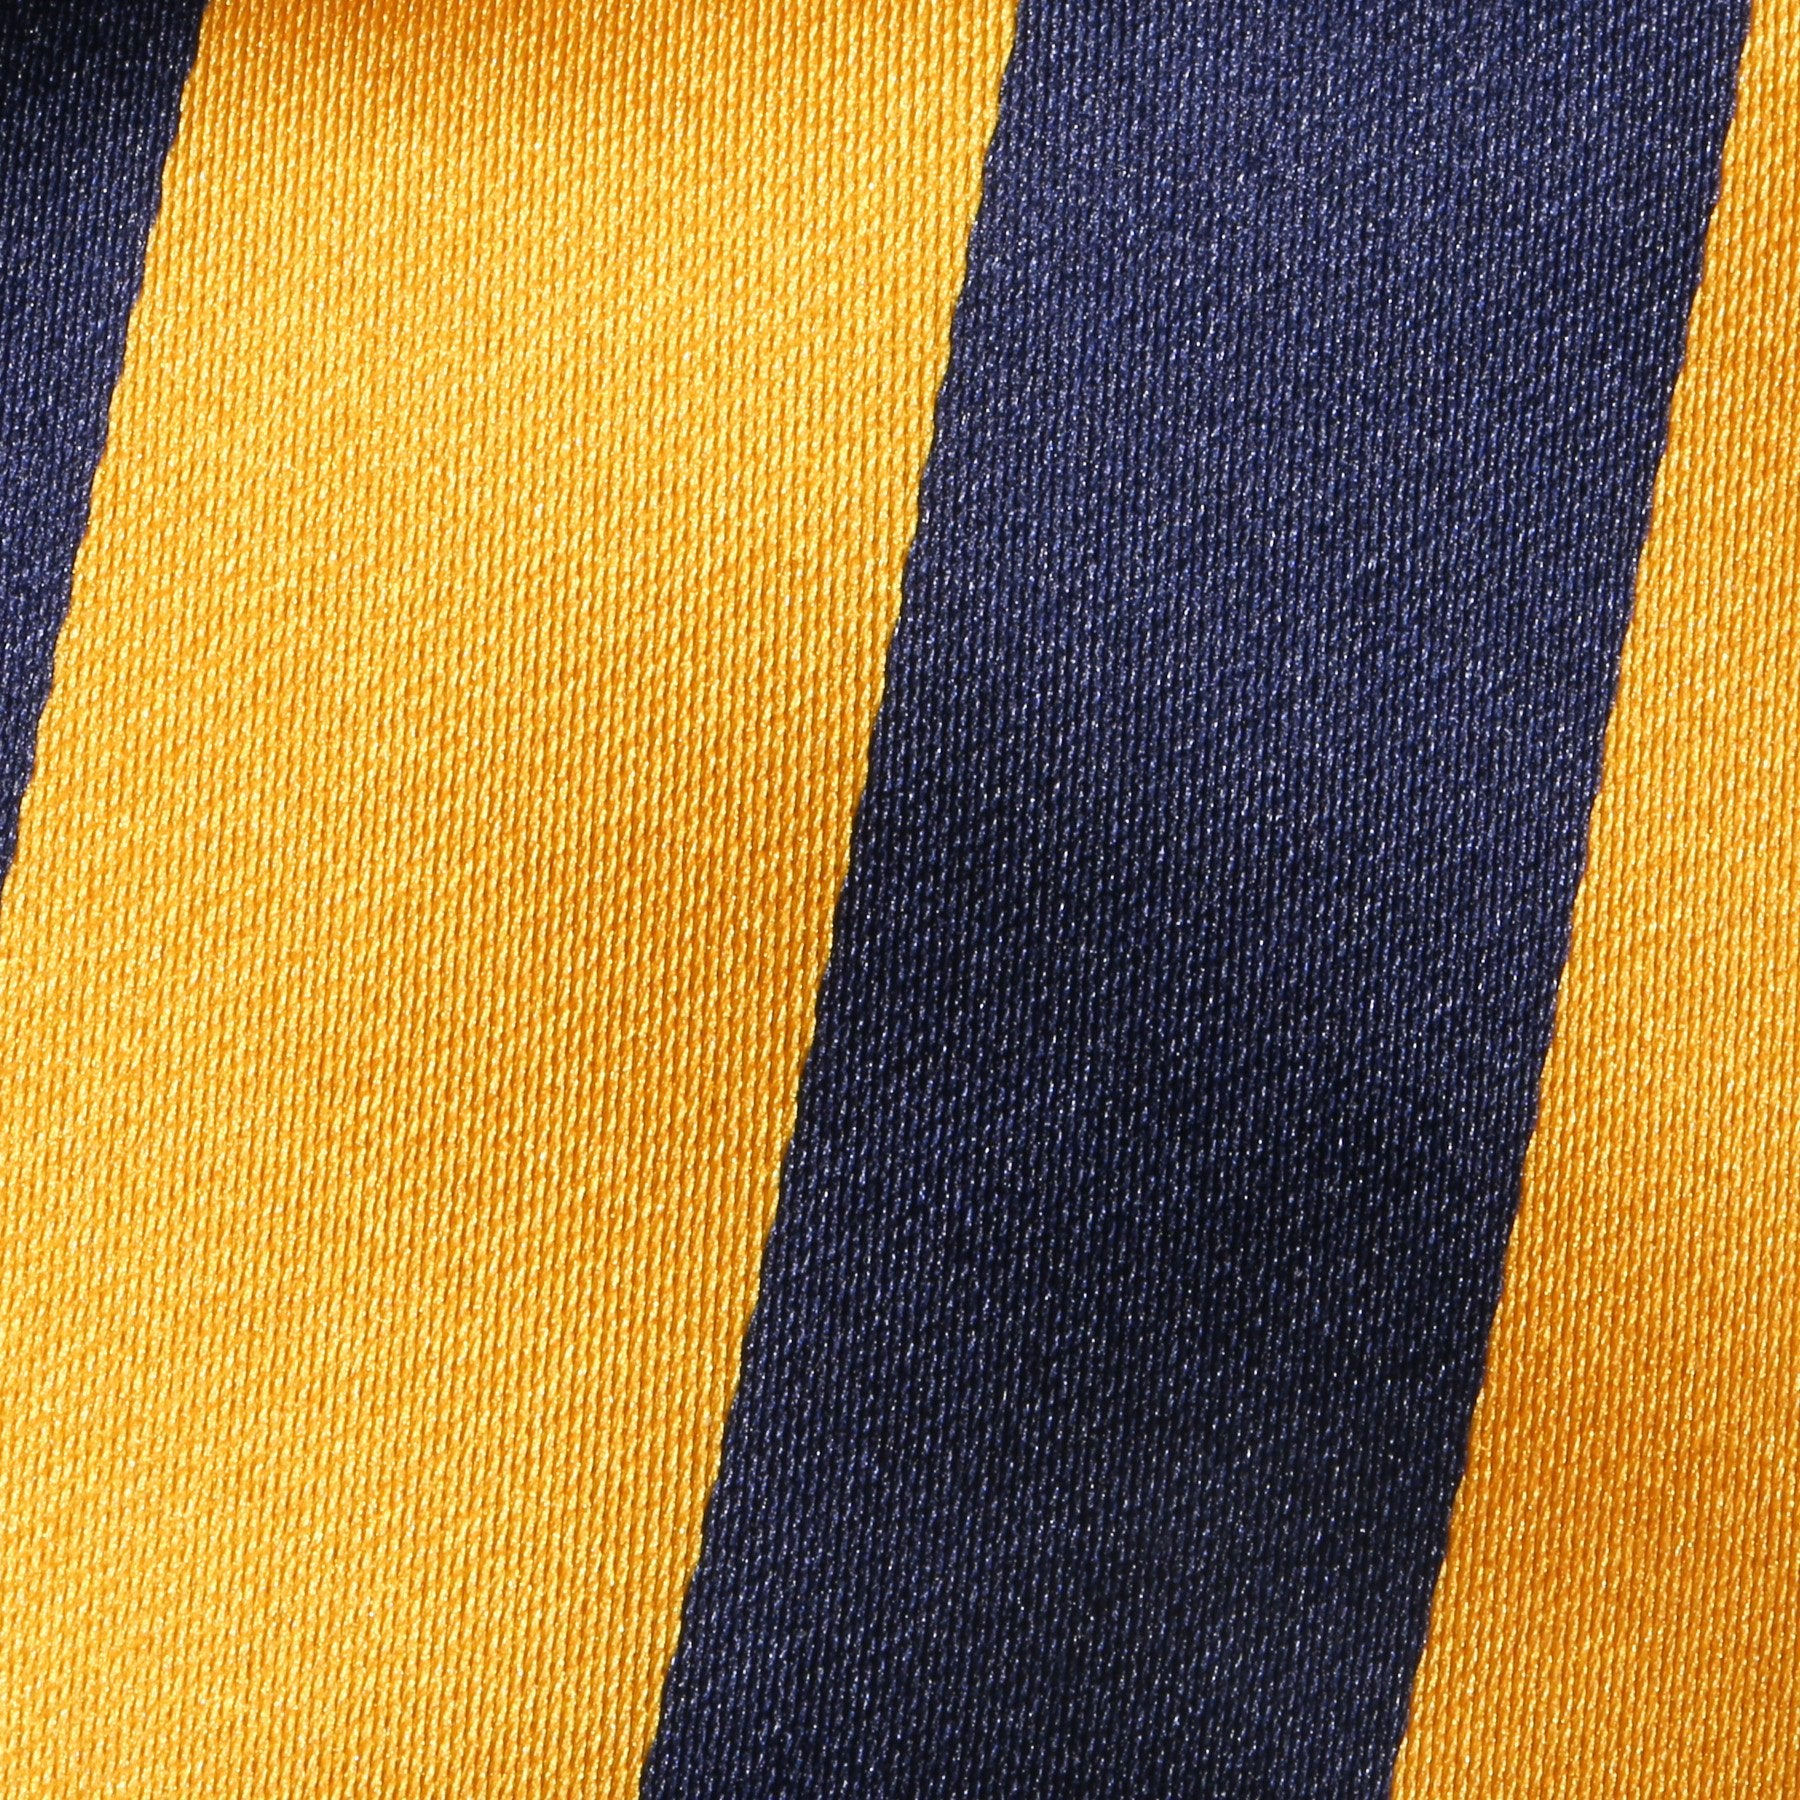 TM2800-02-Folkespeare-Bright-Yellow-And-Navy-Boating-Classic-Tie-2